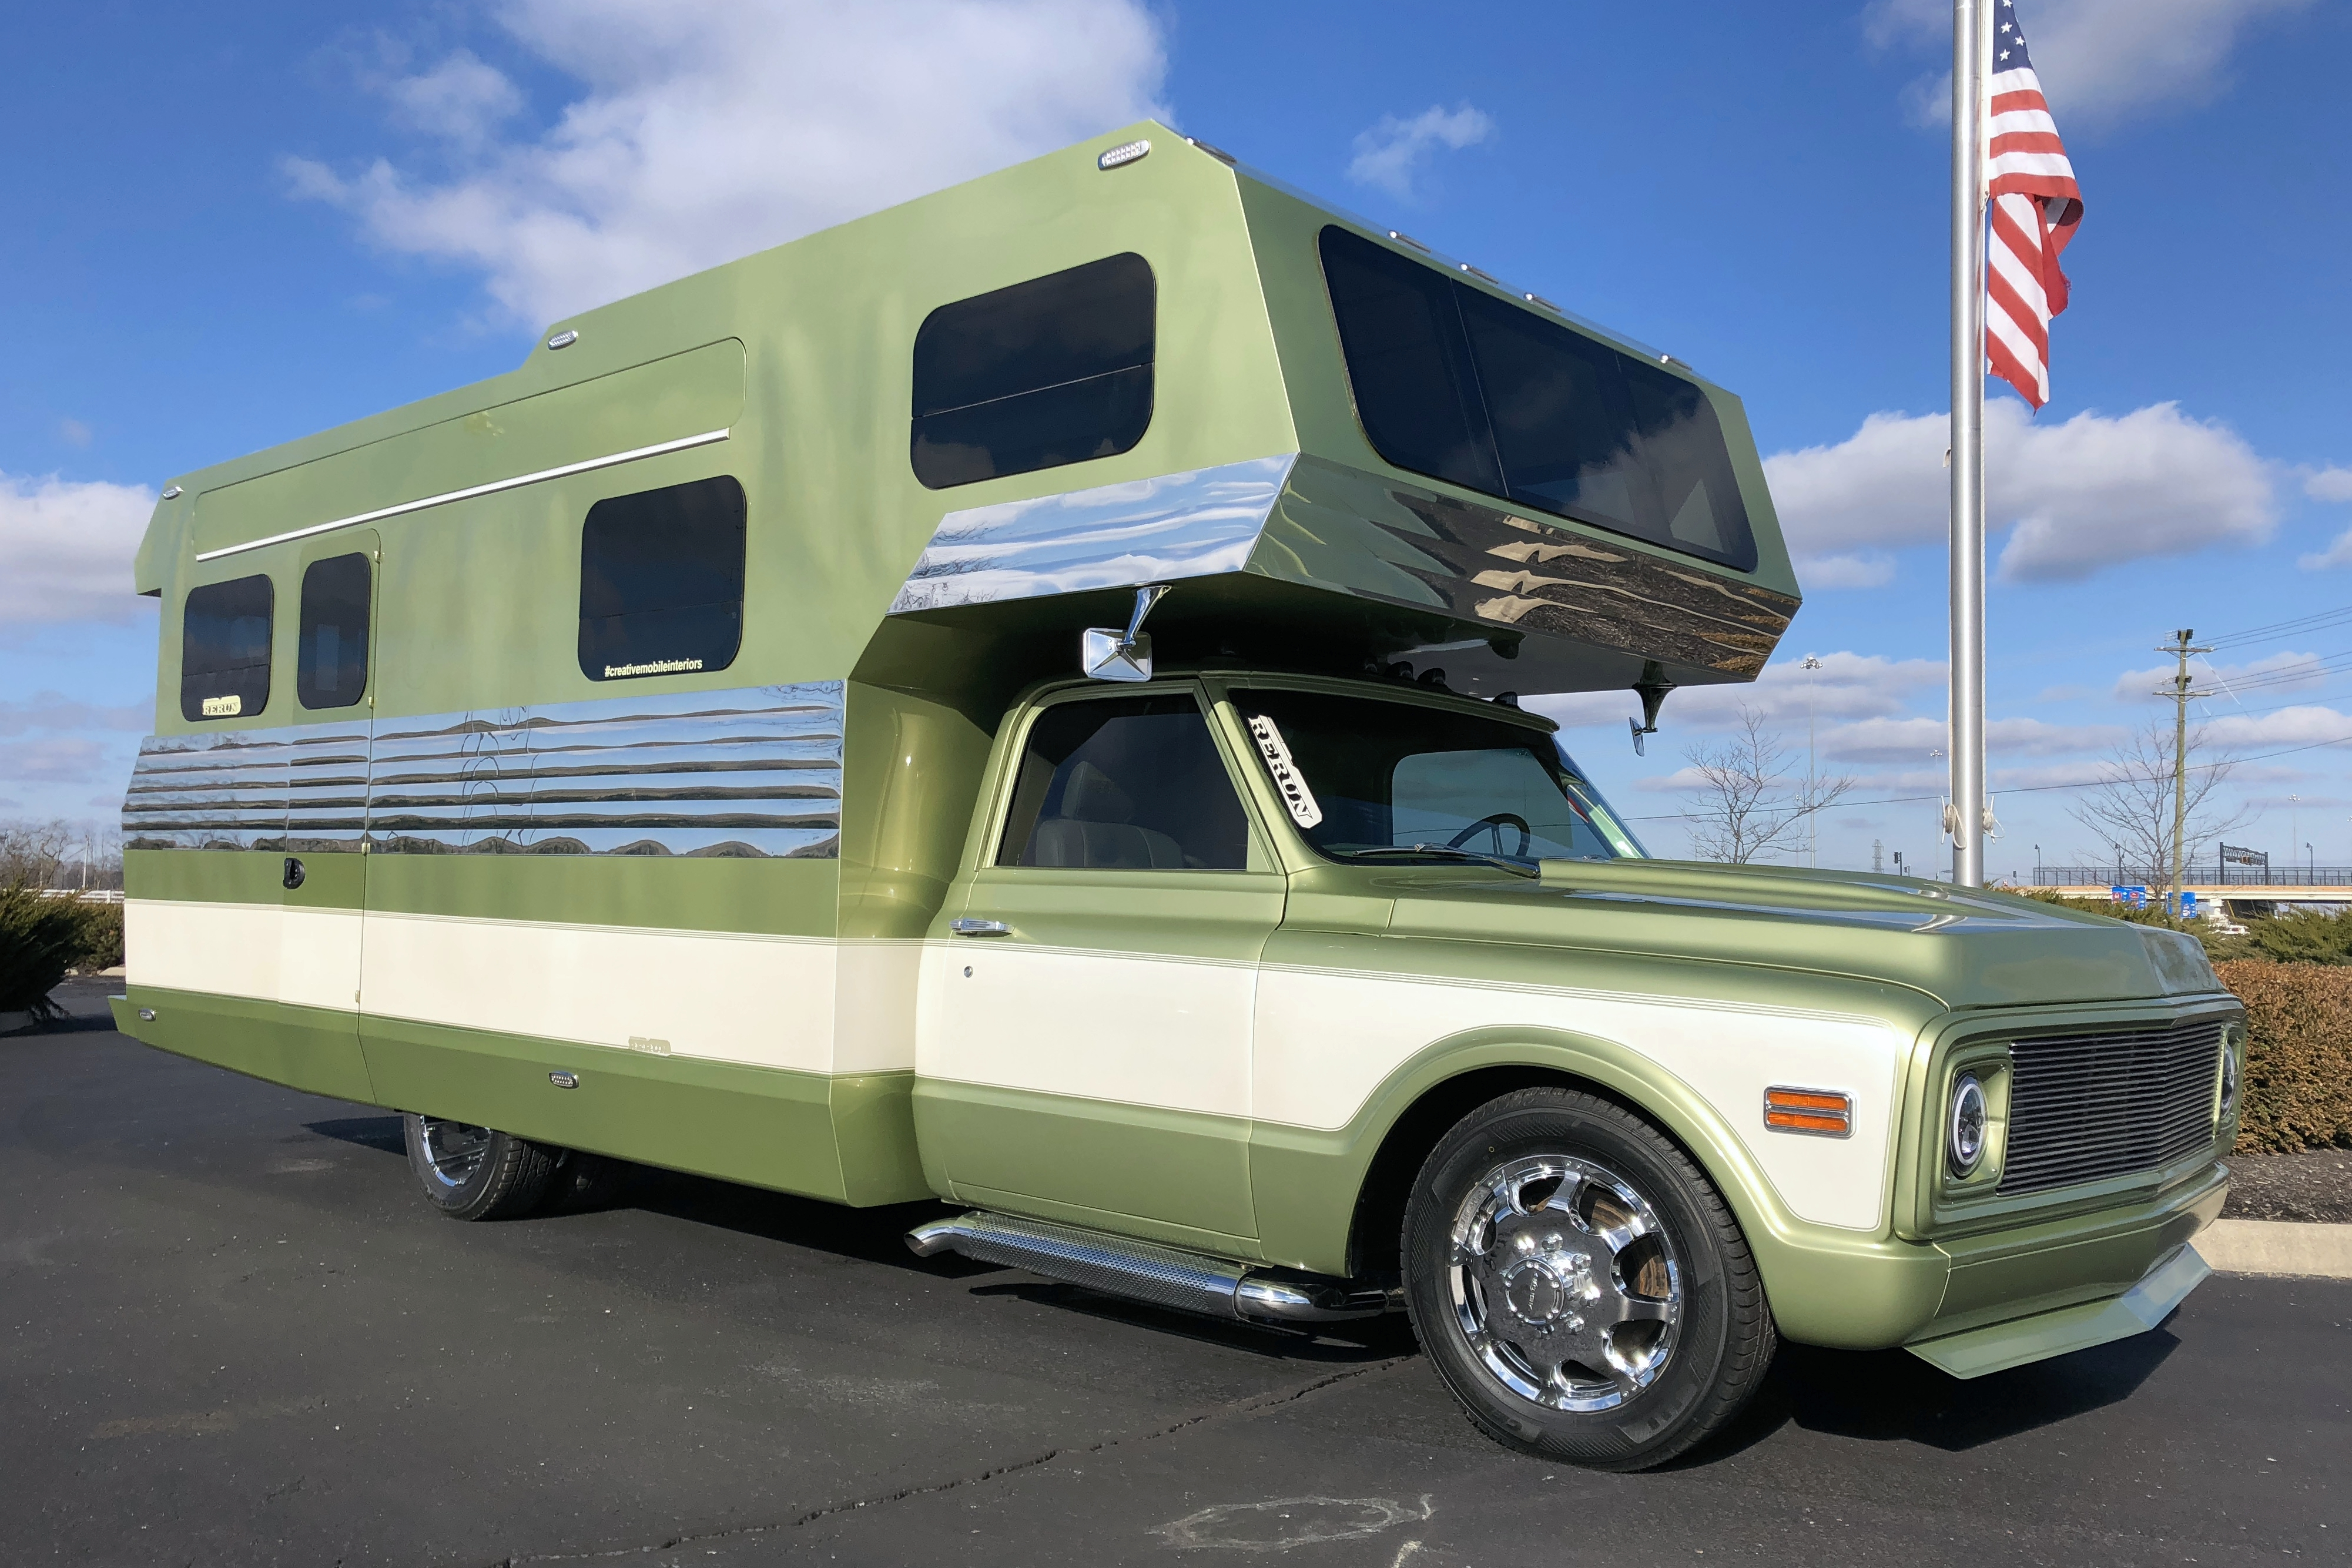 Vintage 1972 camper renovated into an avocado-colored dream